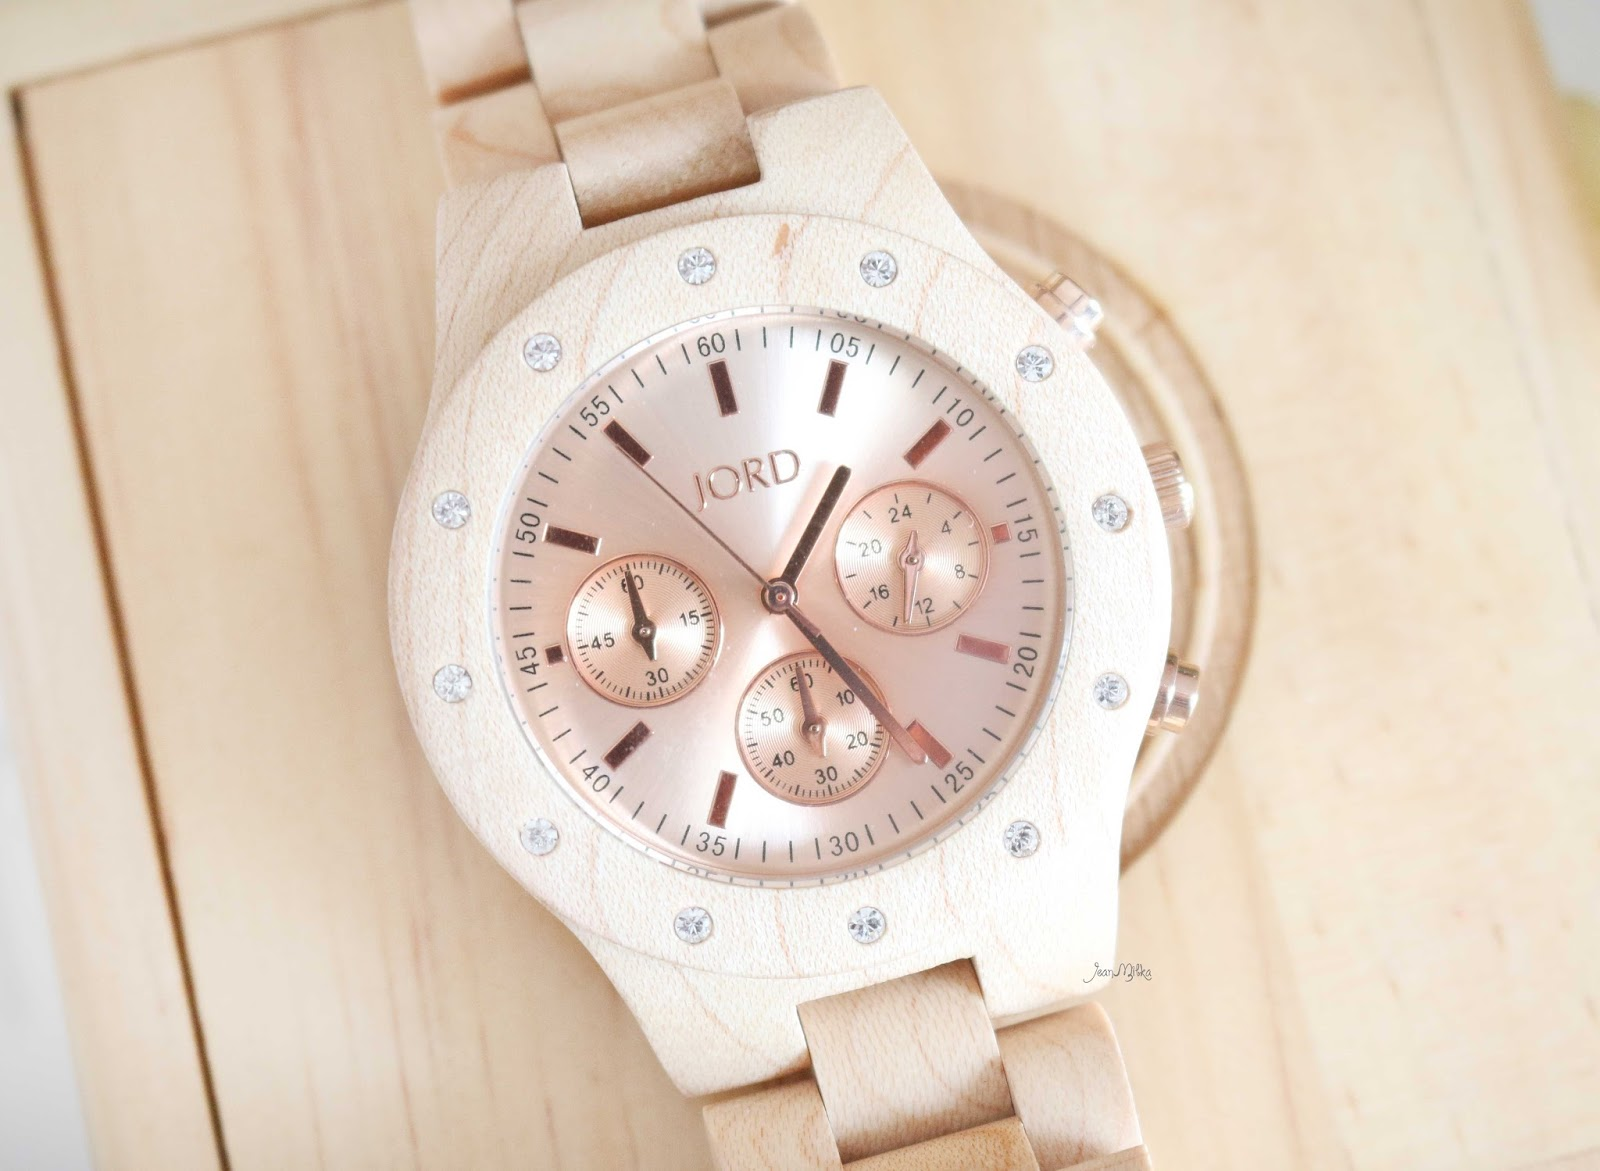 jord, jord watch, jord watches, wood watches, wood watch, jord wood watch, watch, fashion item, style, rose gold accessories, time pieces, unique watch